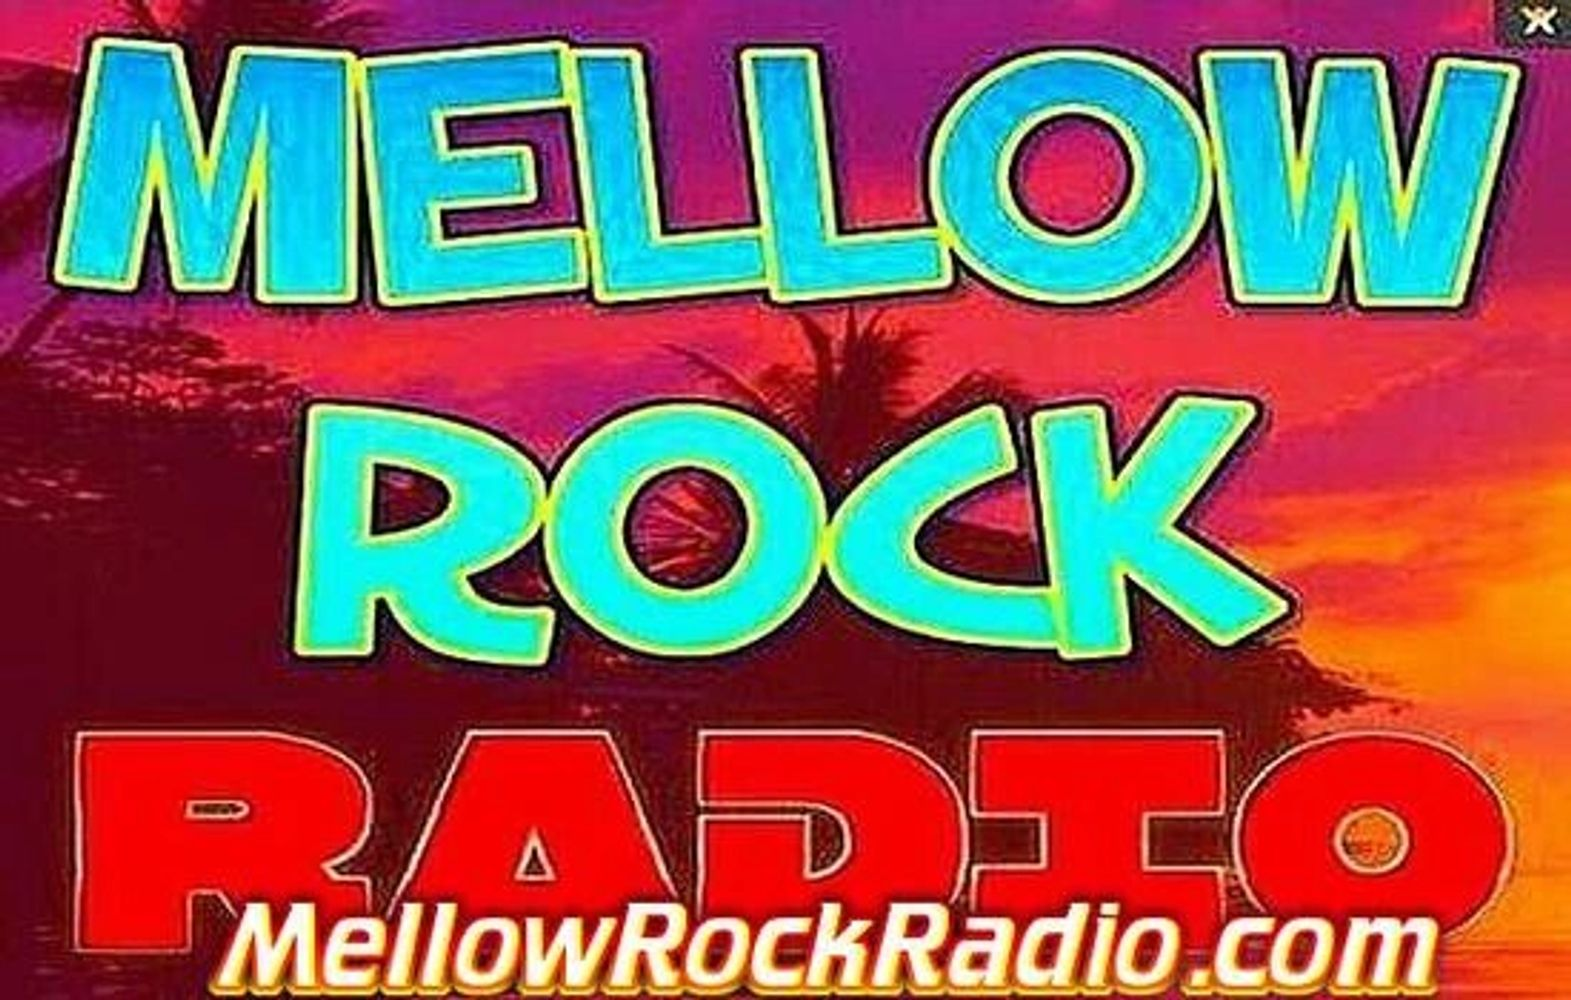 Mellow Rock Radio - MellowRockRadio.com